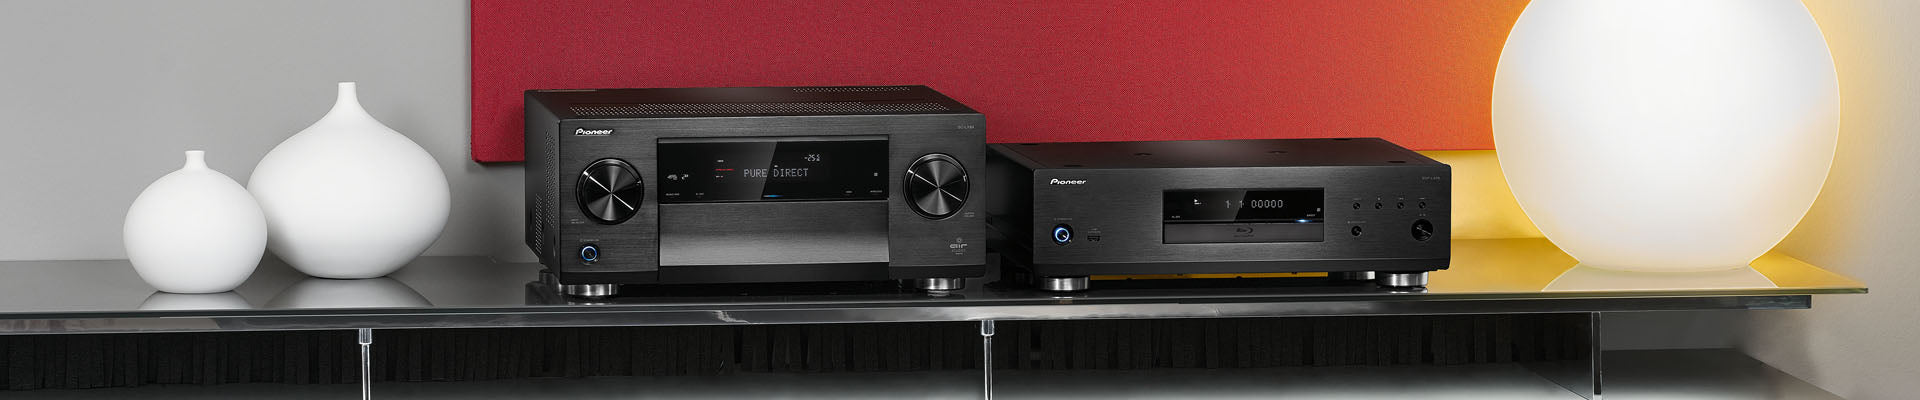 Multichannel Receivers – Pioneer Home Entertainment